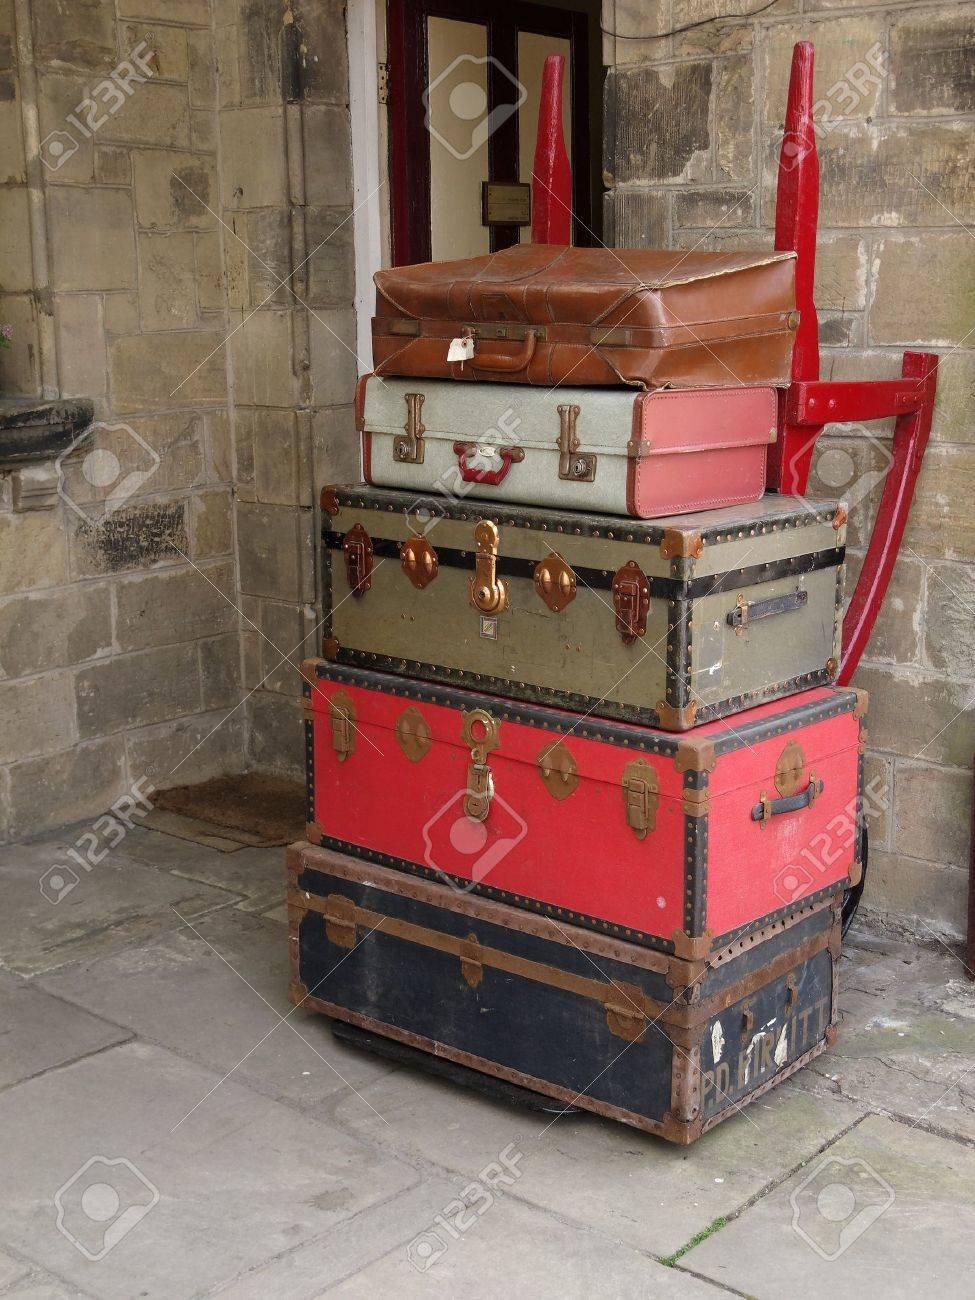 Old Suitcases Old Suitcases Stacked On A Trolley Stock Photo Picture And